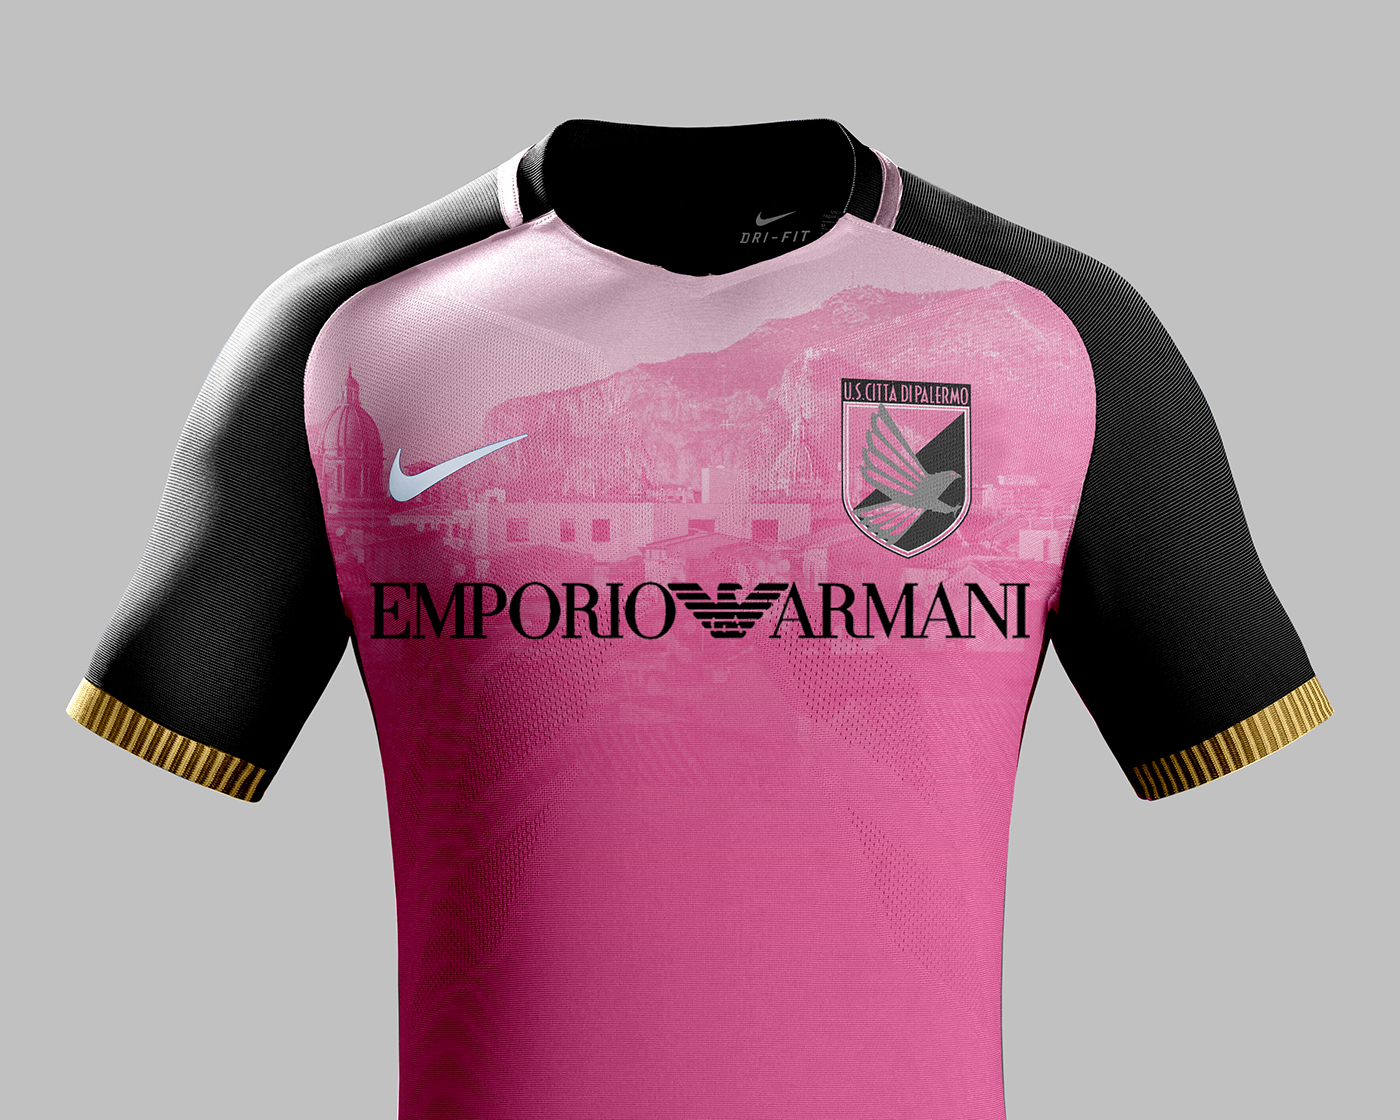 Luxury Brand Football Kits. Sean Bull •. Follow Following Unfollow. Save to  Collection 9246997d4